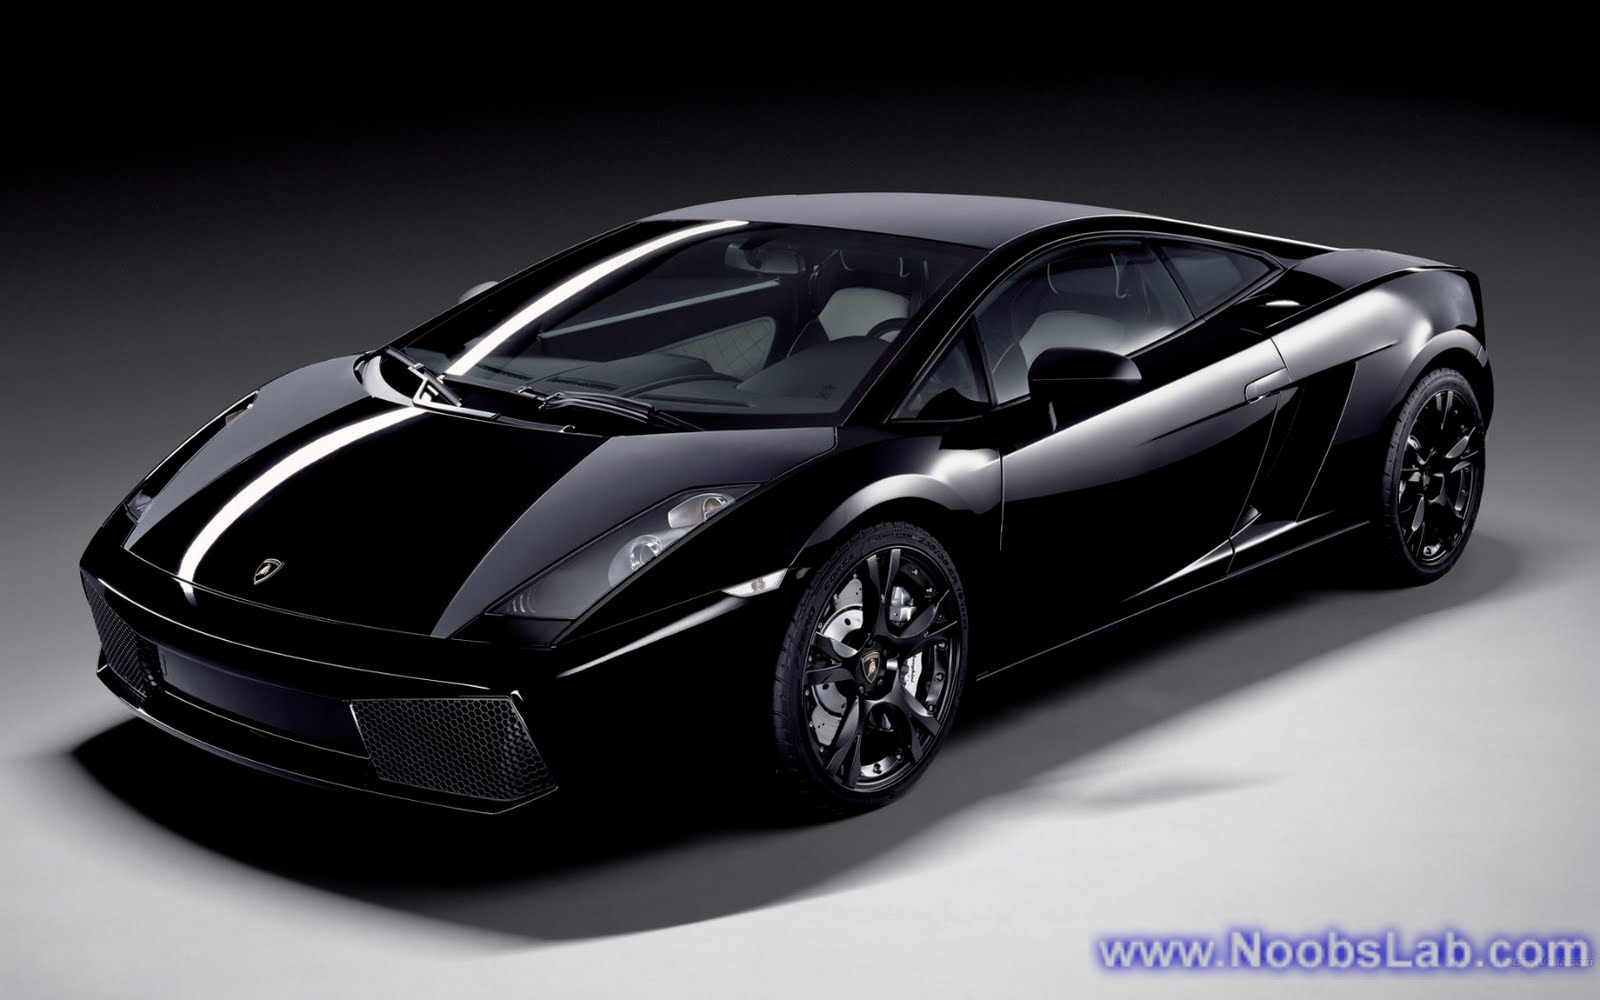 New Cars Models Wallpapers - NoobsLab | Tips for Linux ...